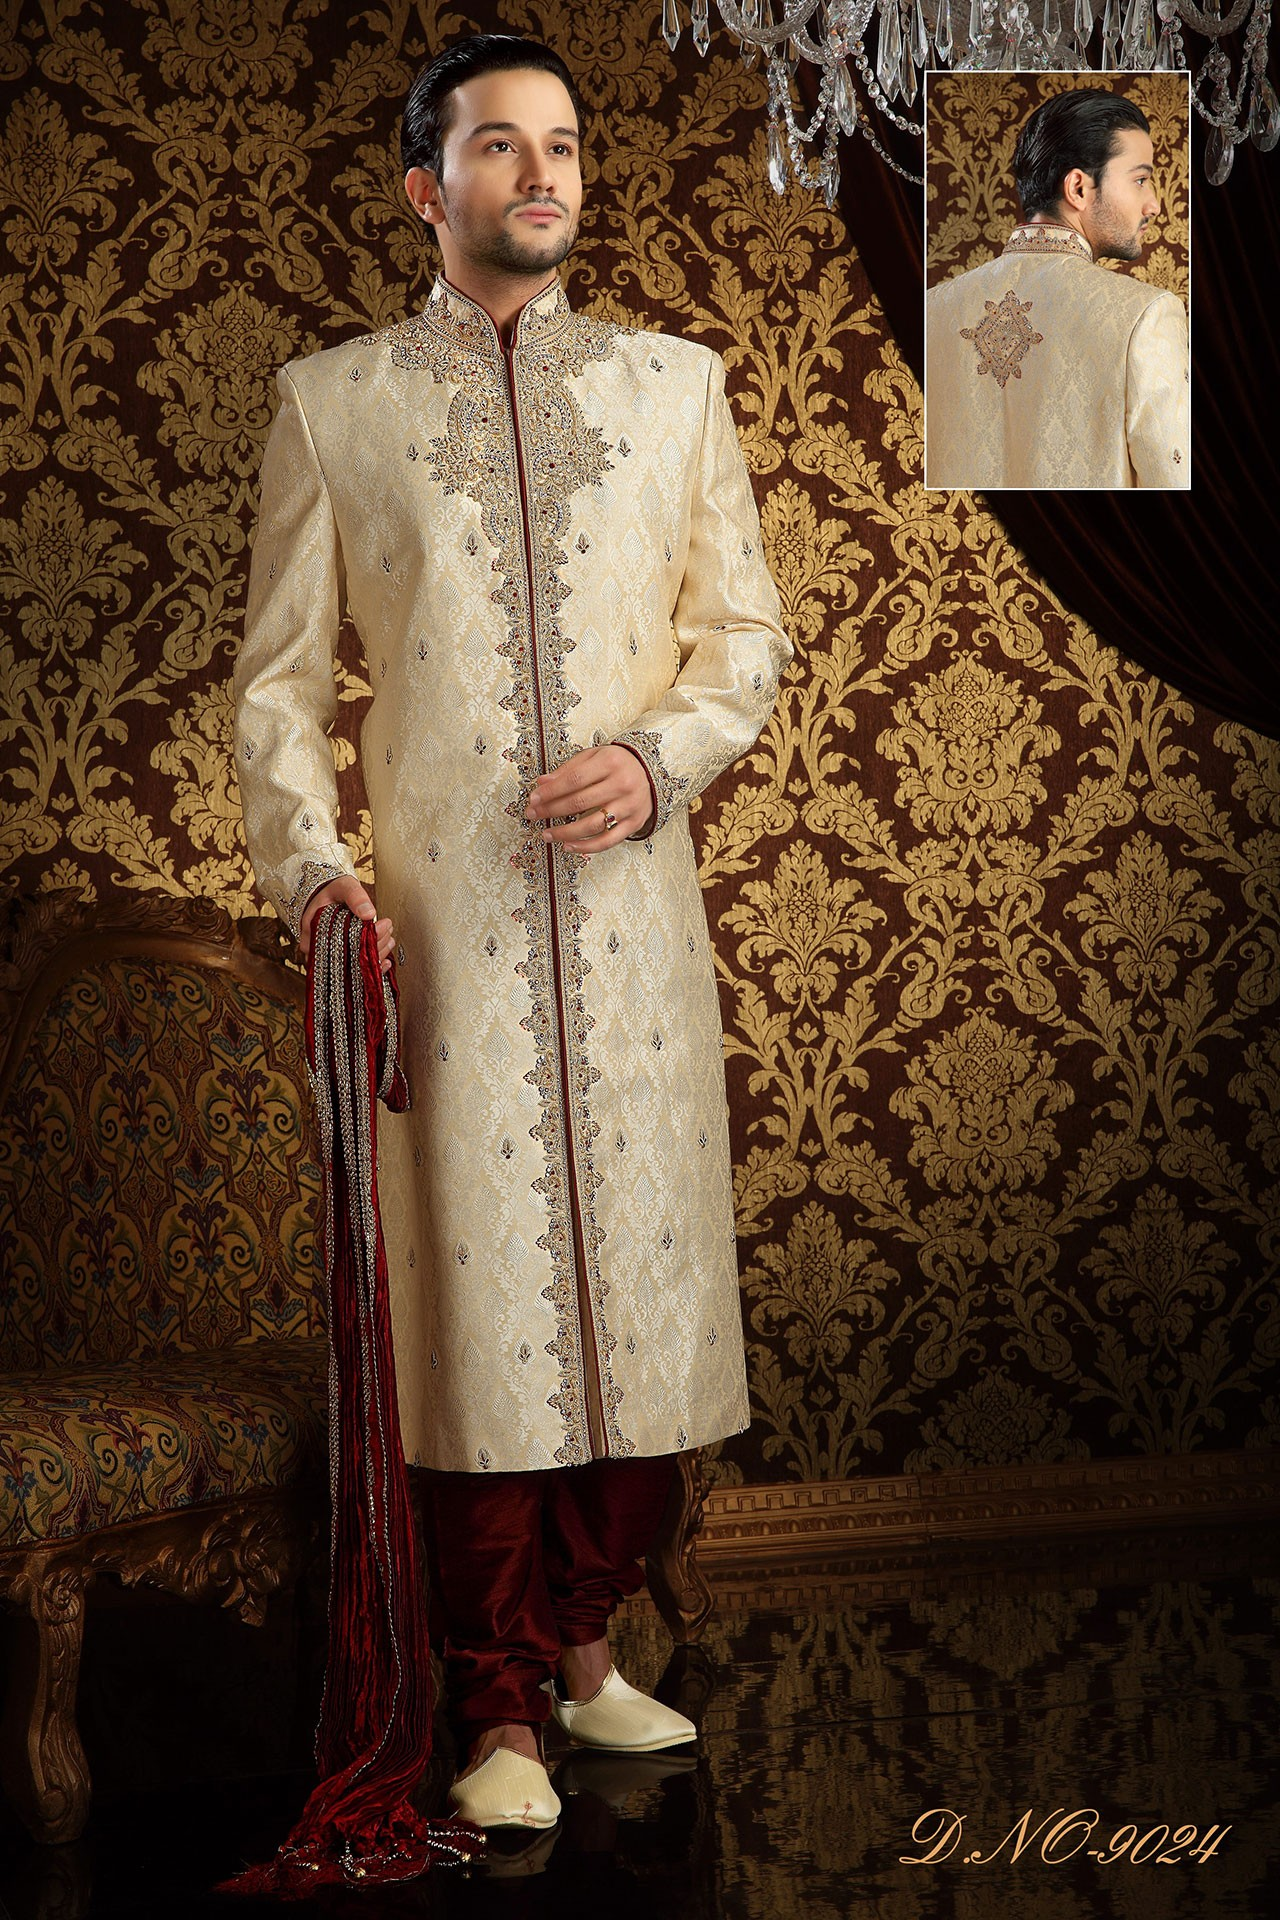 ANTIQUE LOOK SHERWANI